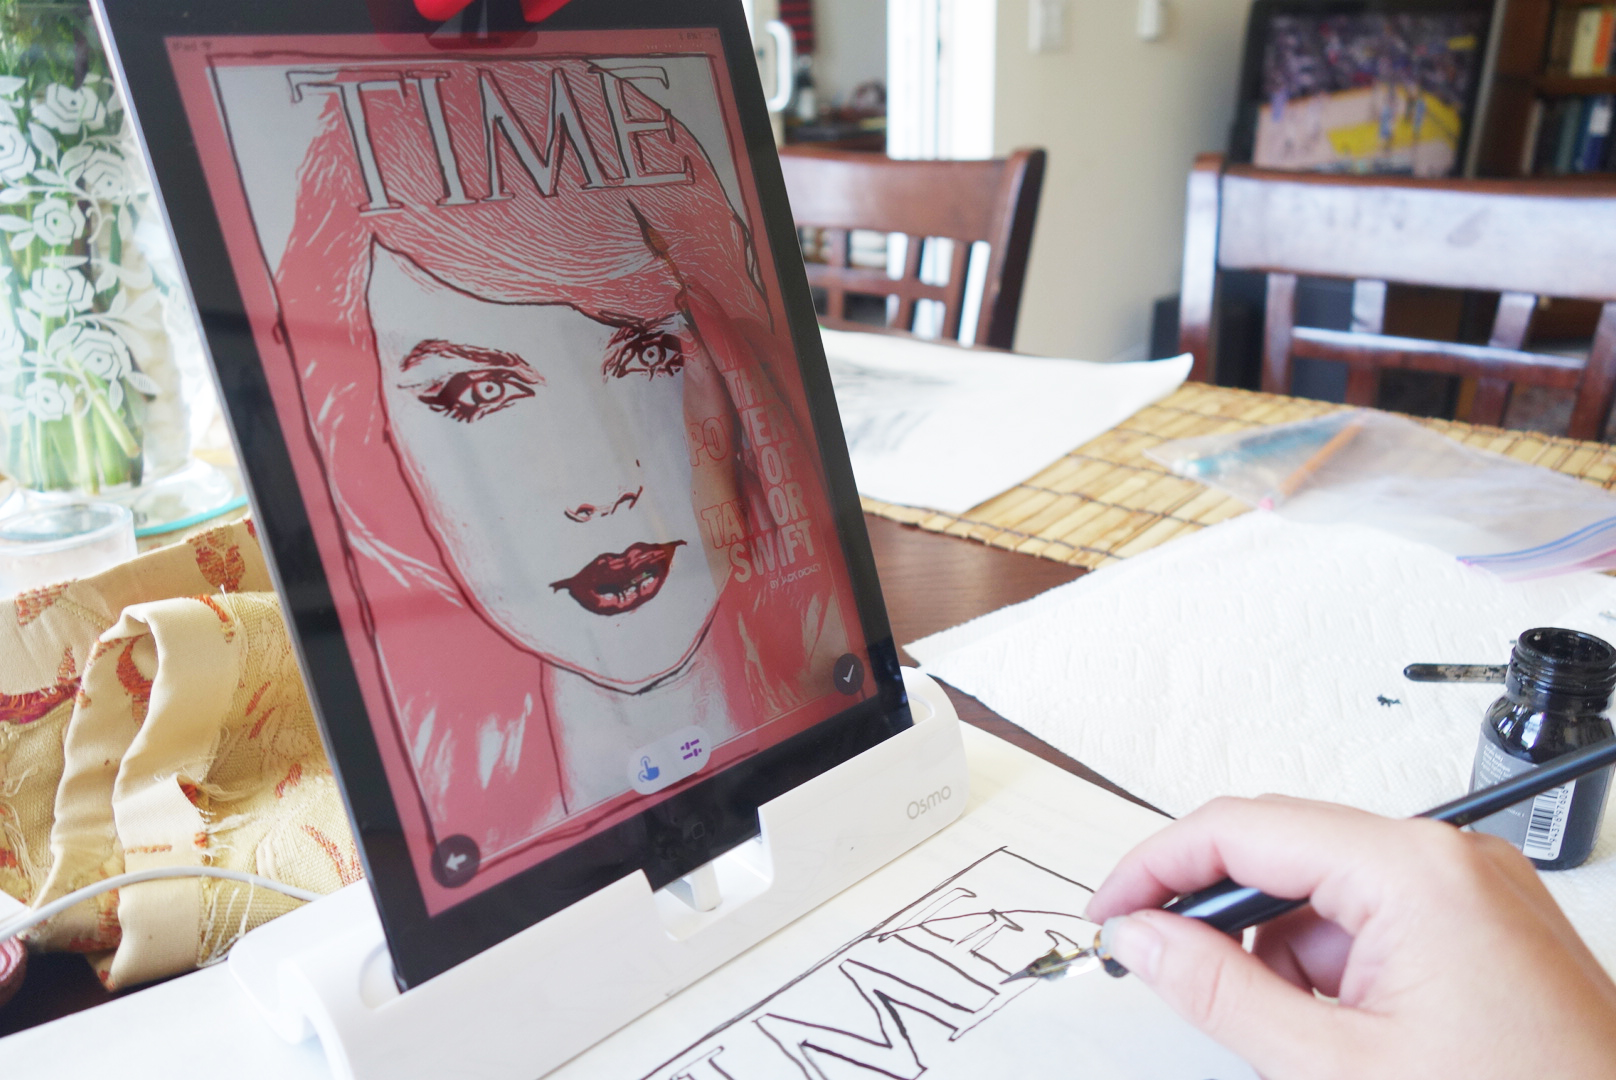 Osmo's Masterpiece app breaks down images into lines that the user can trace, watching their own hand move across the physical page on the tablet's screen. Photo by Katy Steinmetz for TIME